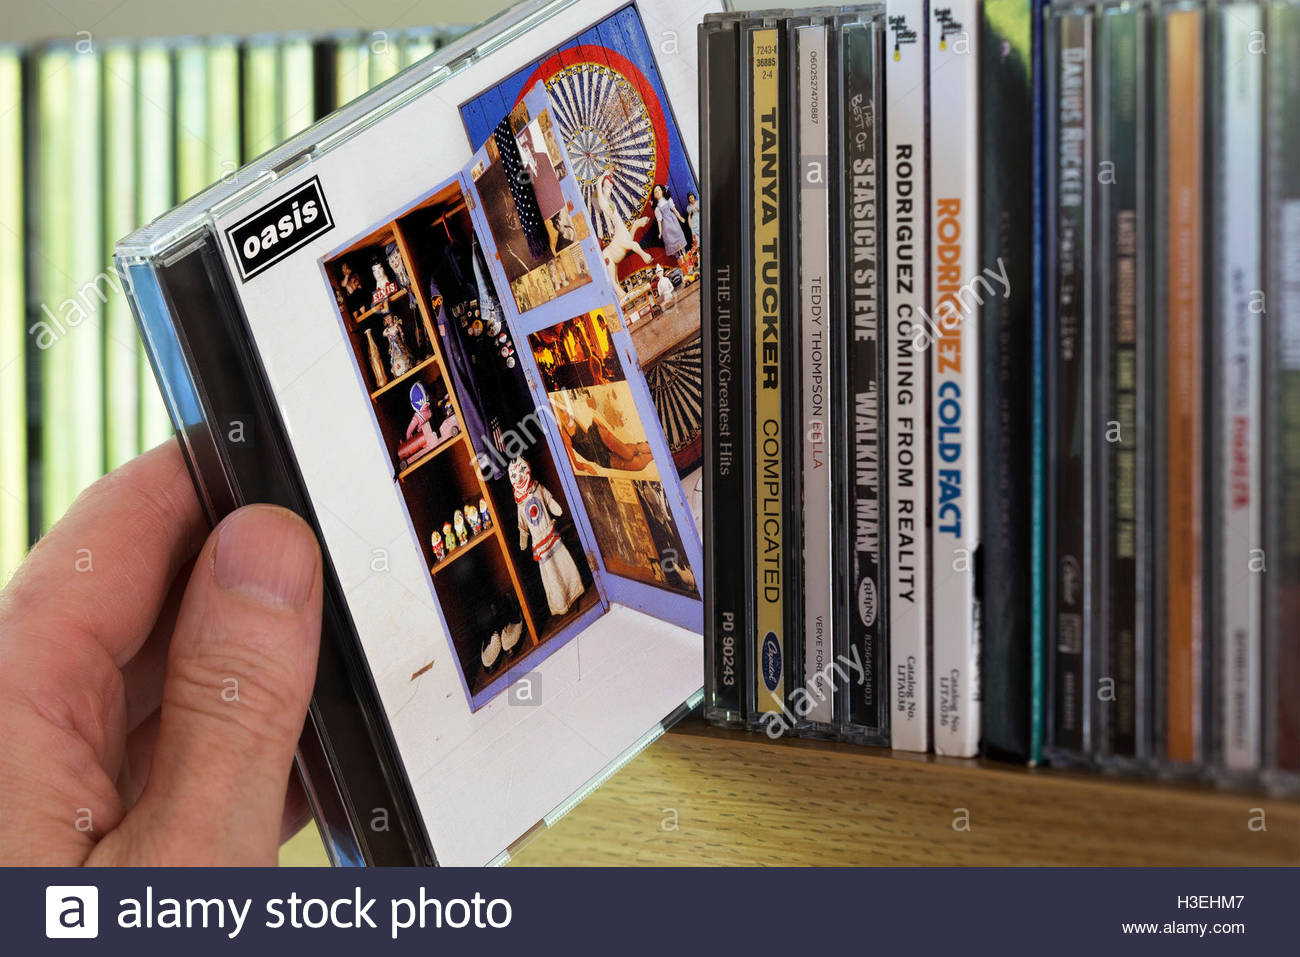 2006 Oasis compilation Stop The Clocks CD being chosen from a shelf of other CD's - Stock Image